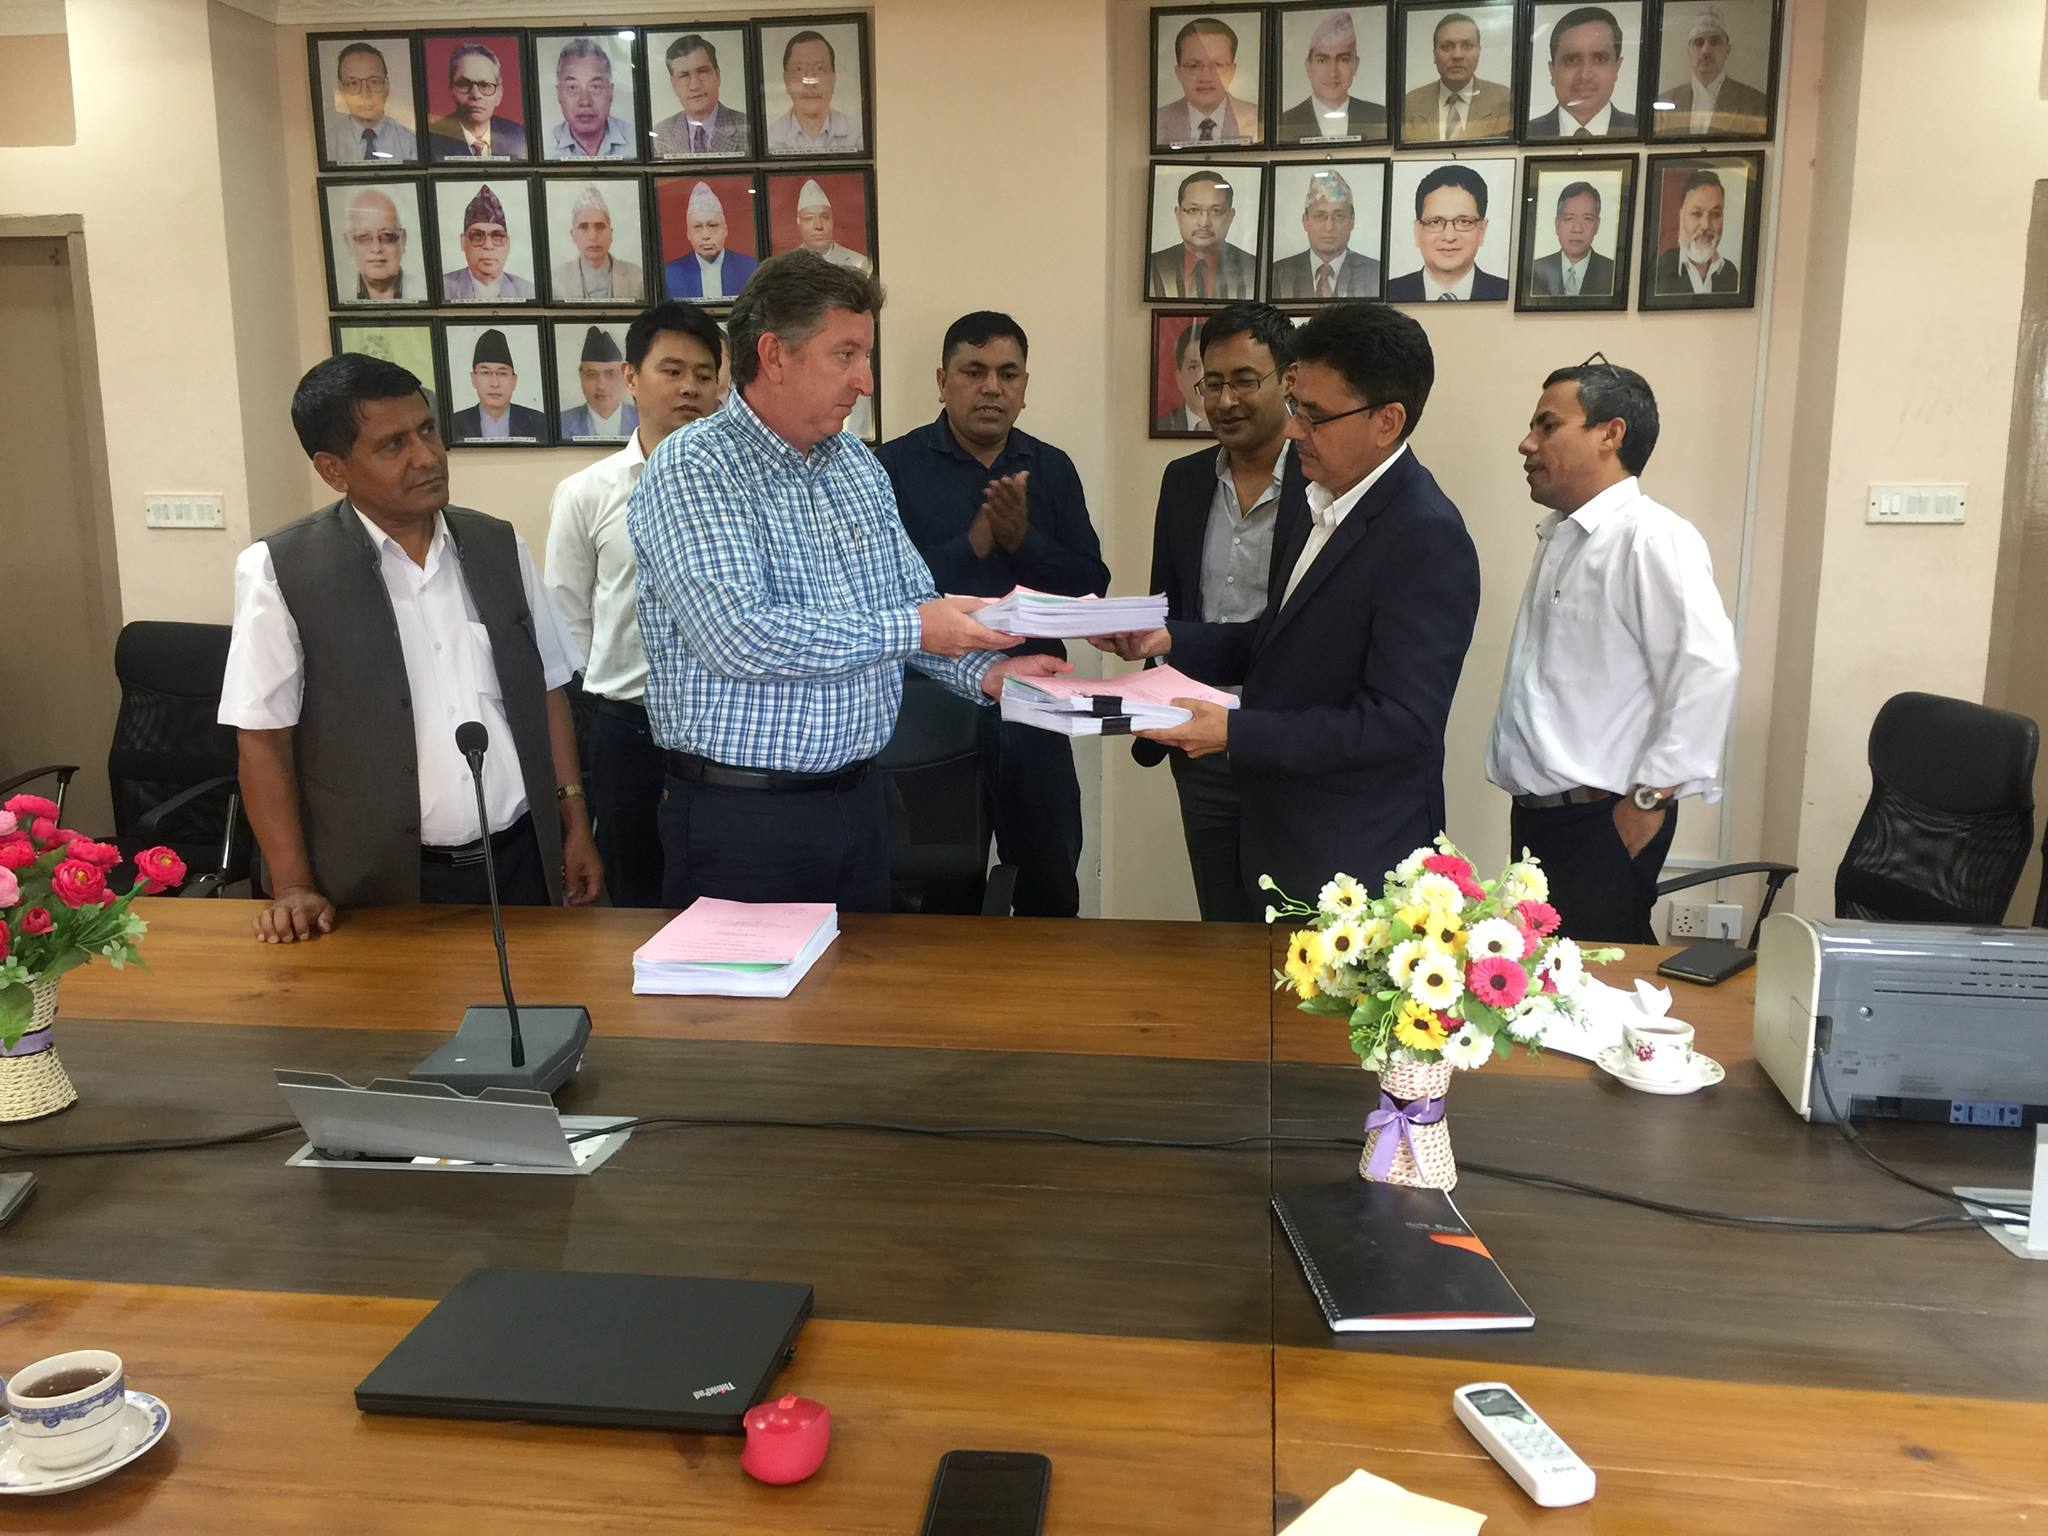 Dr. Beau Freeman of Lahmeyer signs the contract documents with Madhav Belbase, Joint Secretary of the WECS